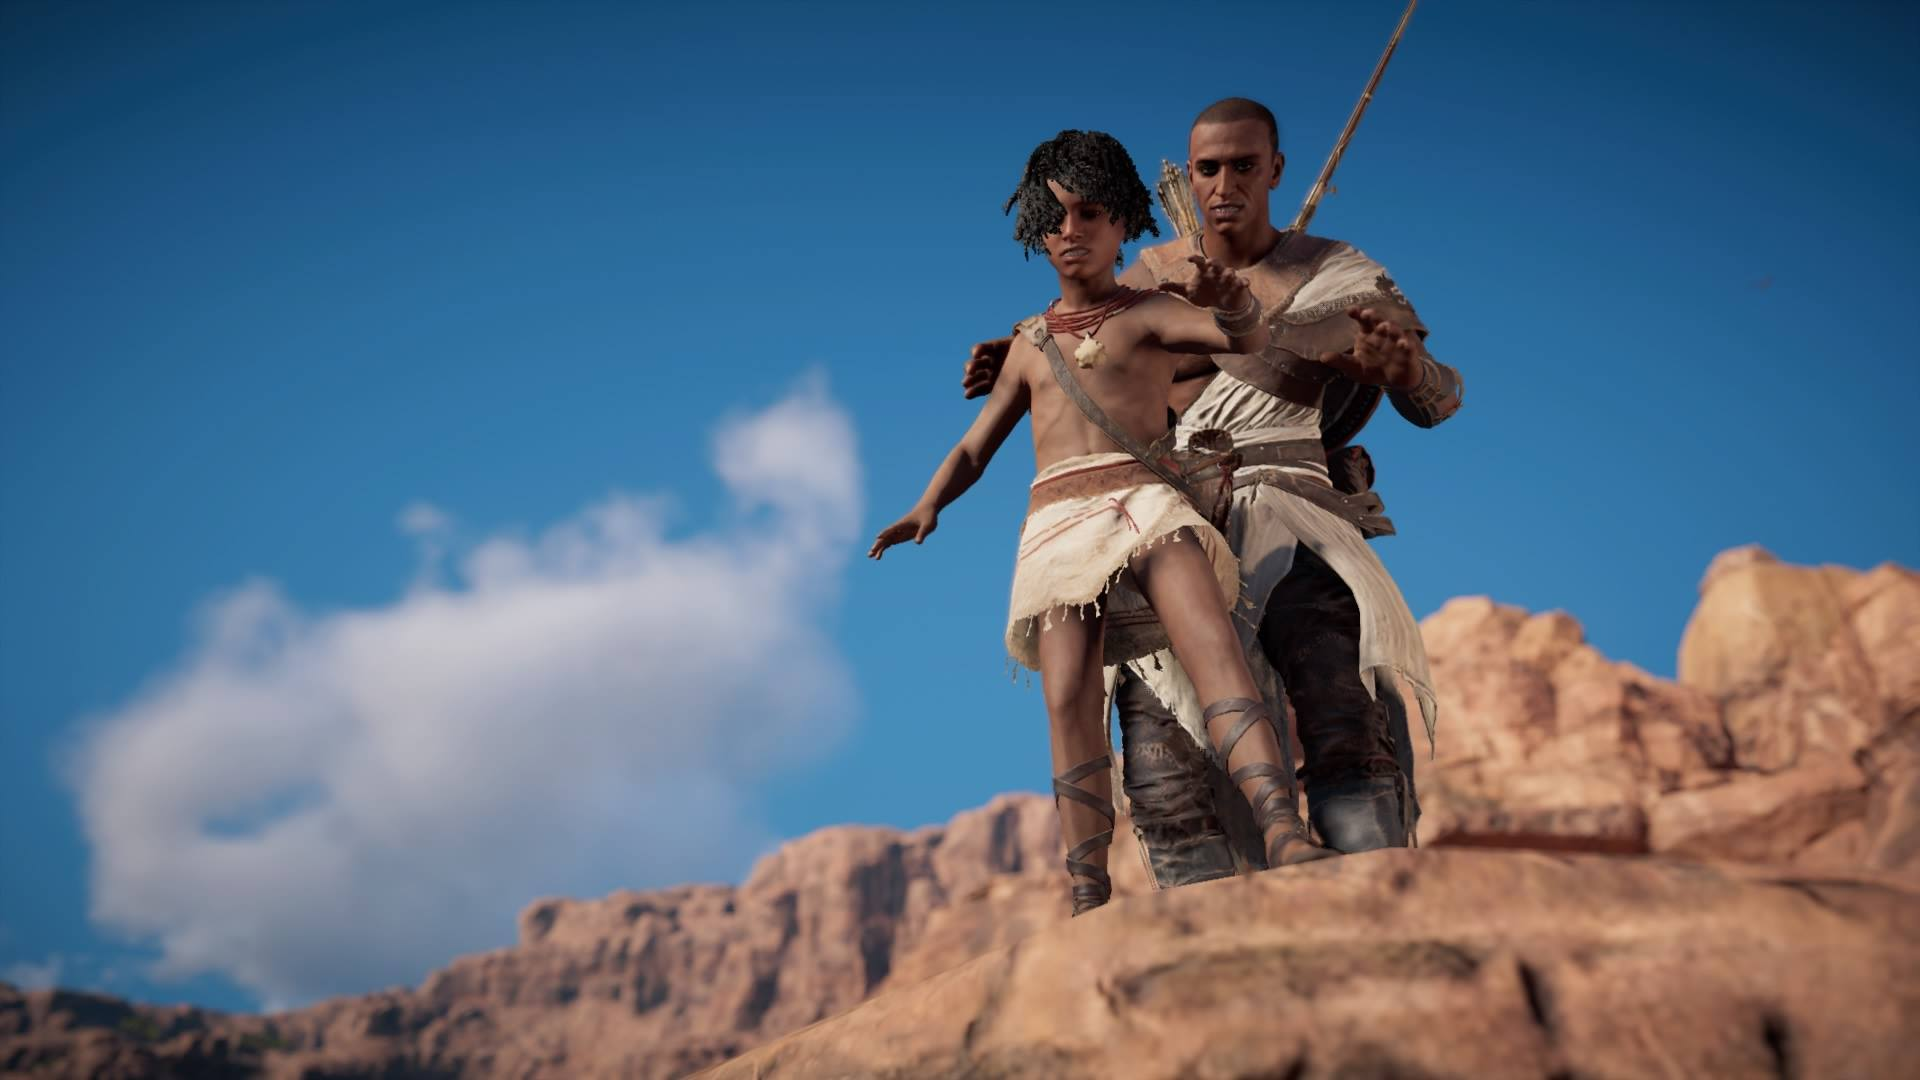 Assassin's Creed image 13